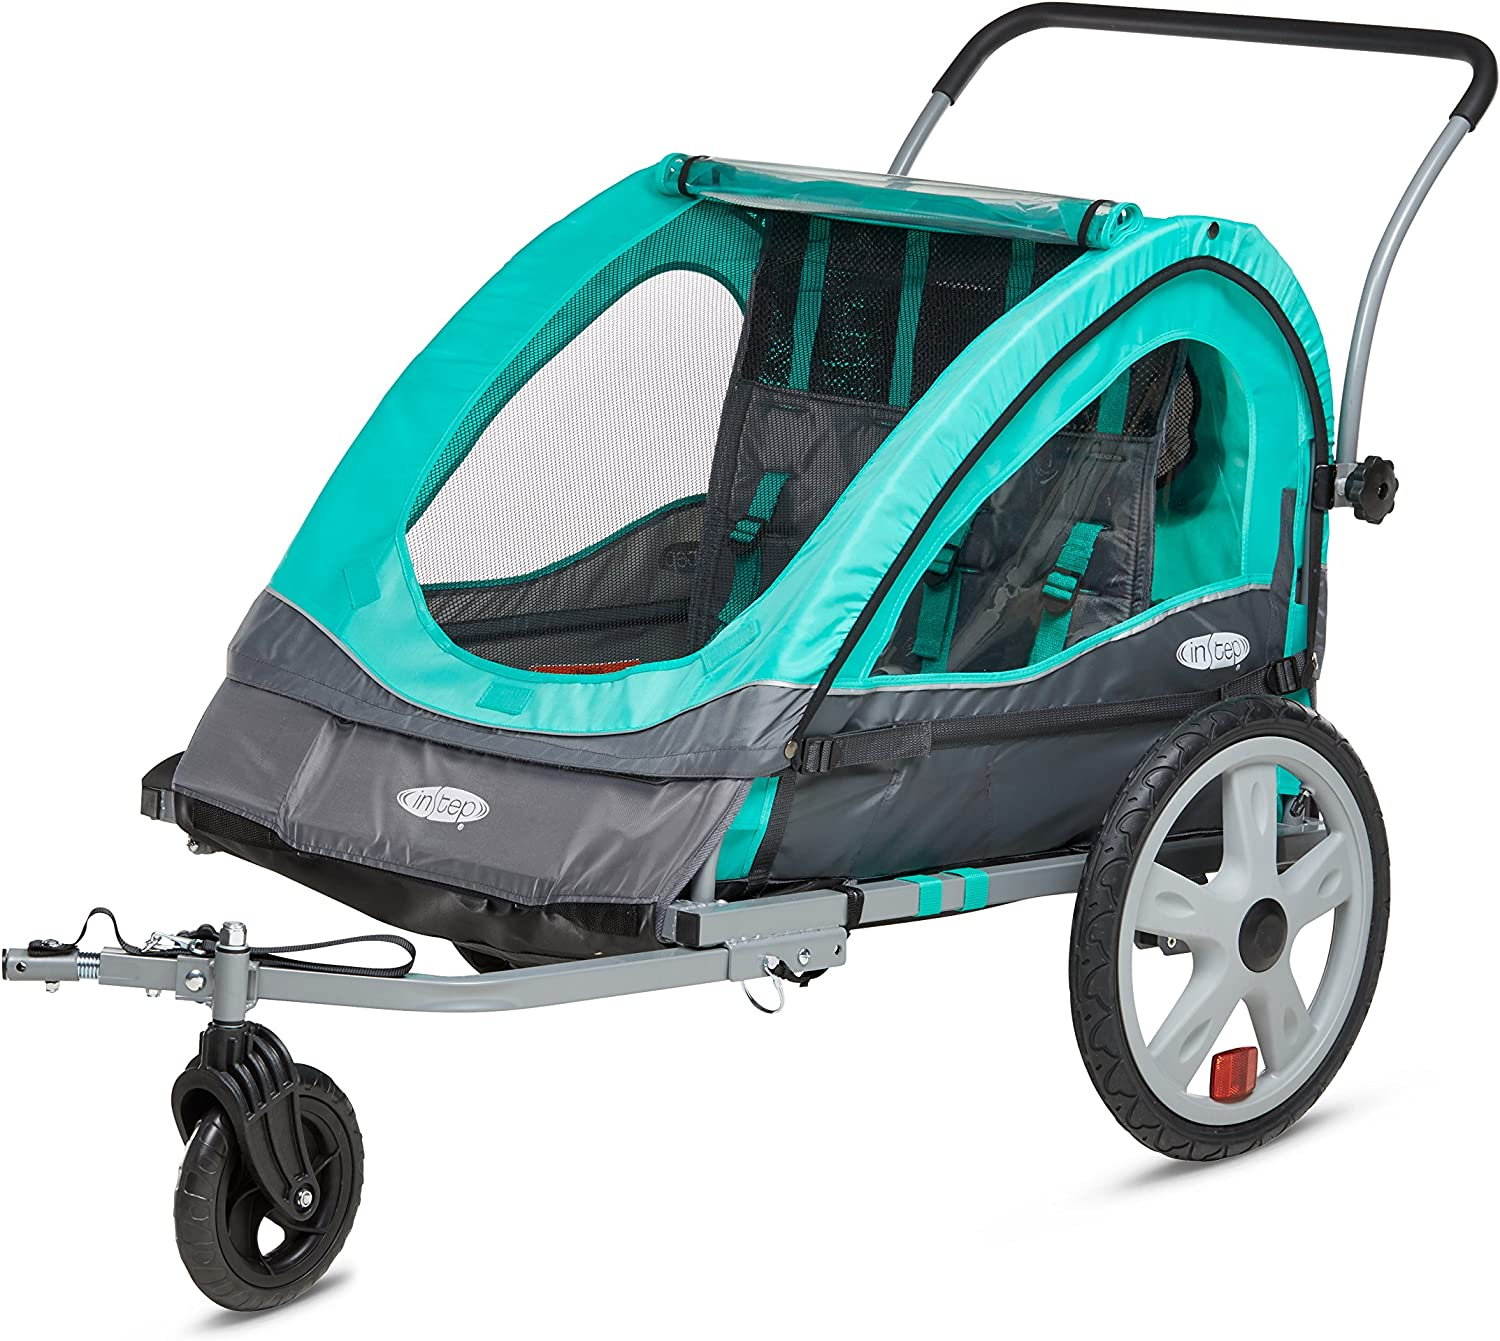 Instep Quick-N-EZ Double Seat Foldable Tow Behind Bike Trailers, Converts to Stroller Jogger, Featuring 2-in-1 Canopy and 16-Inch Wheels, for Kids and Children, Multiple Colors Available